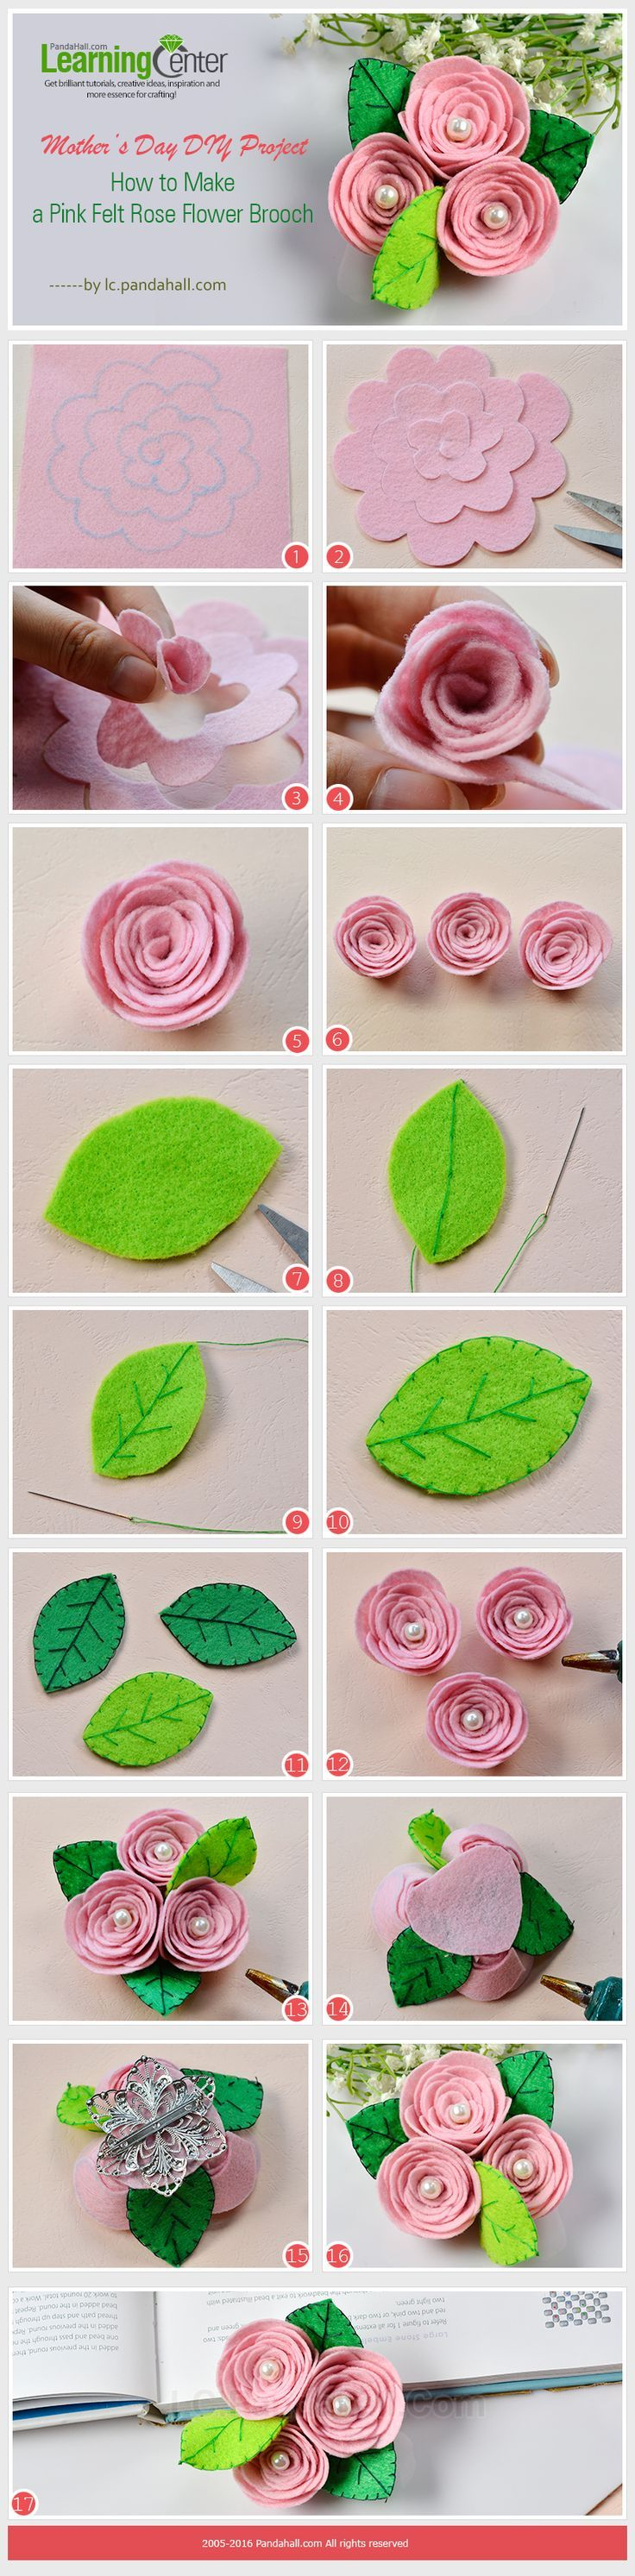 Mother's Day DIY Project - How to Make a Pink Felt Rose Flower Brooch from http://LC.Pandahall.com